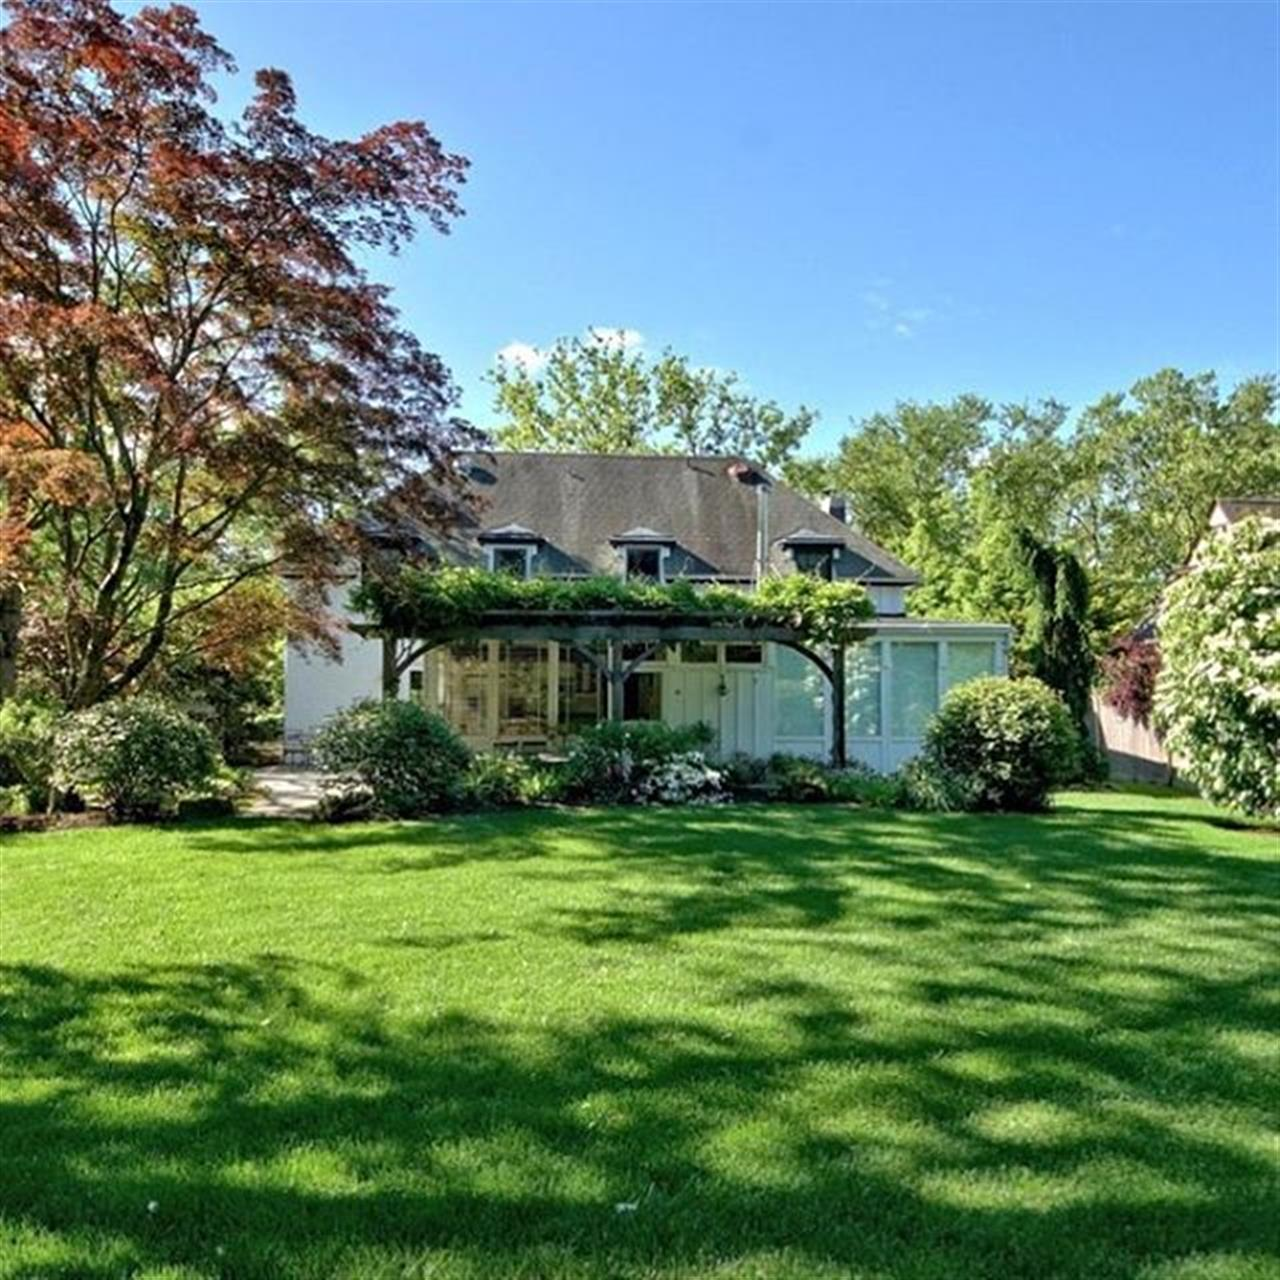 This backyard provides an inviting expanse of green lawn bordered by flowering trees and plants. . 158 Terhune Road Princeton, NJ http://bit.ly/2z3HYWu